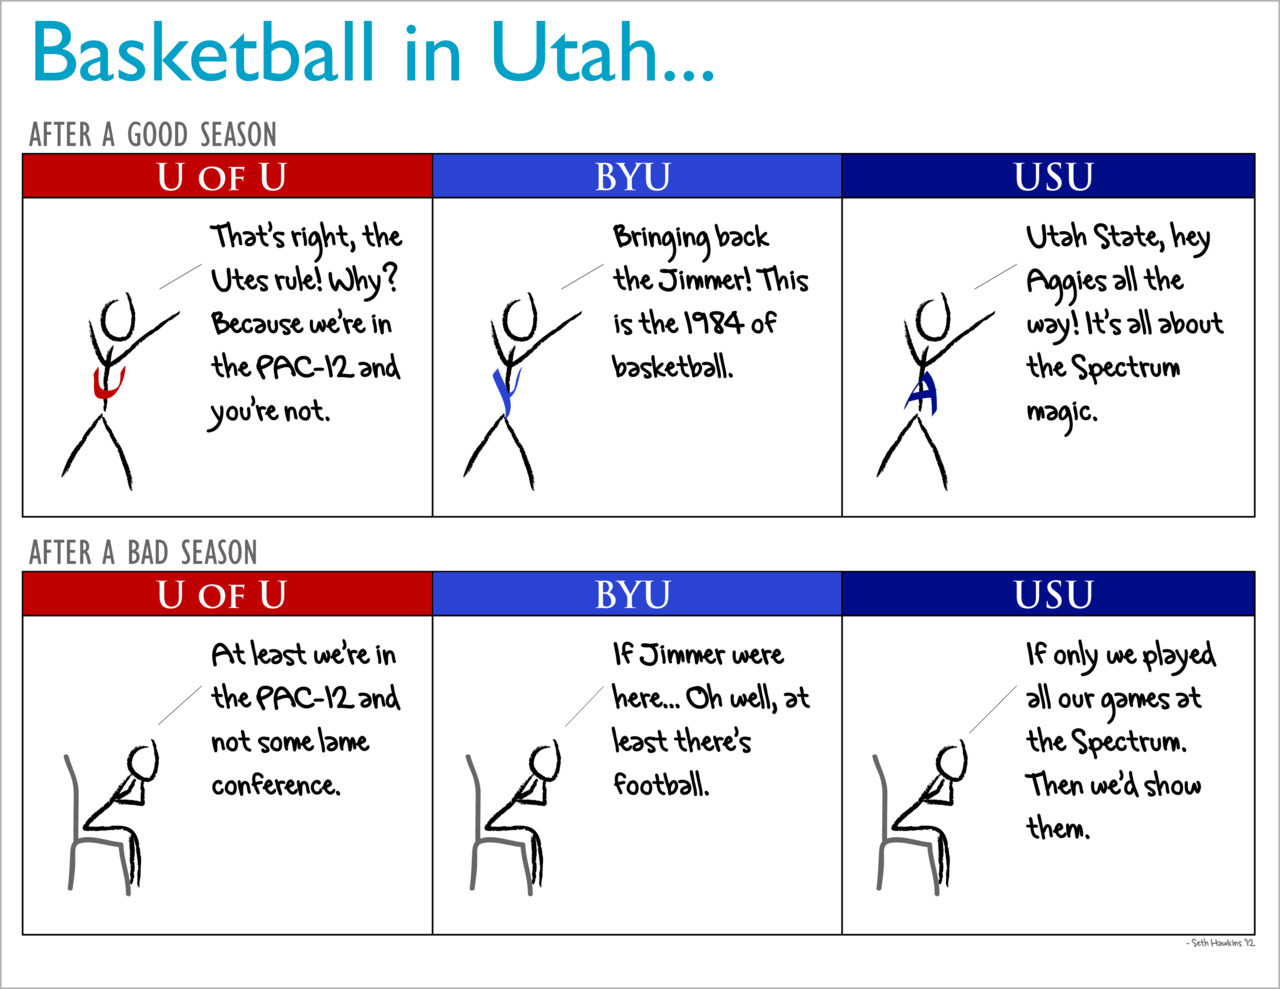 hawktech:  A look at college basketball in Utah.